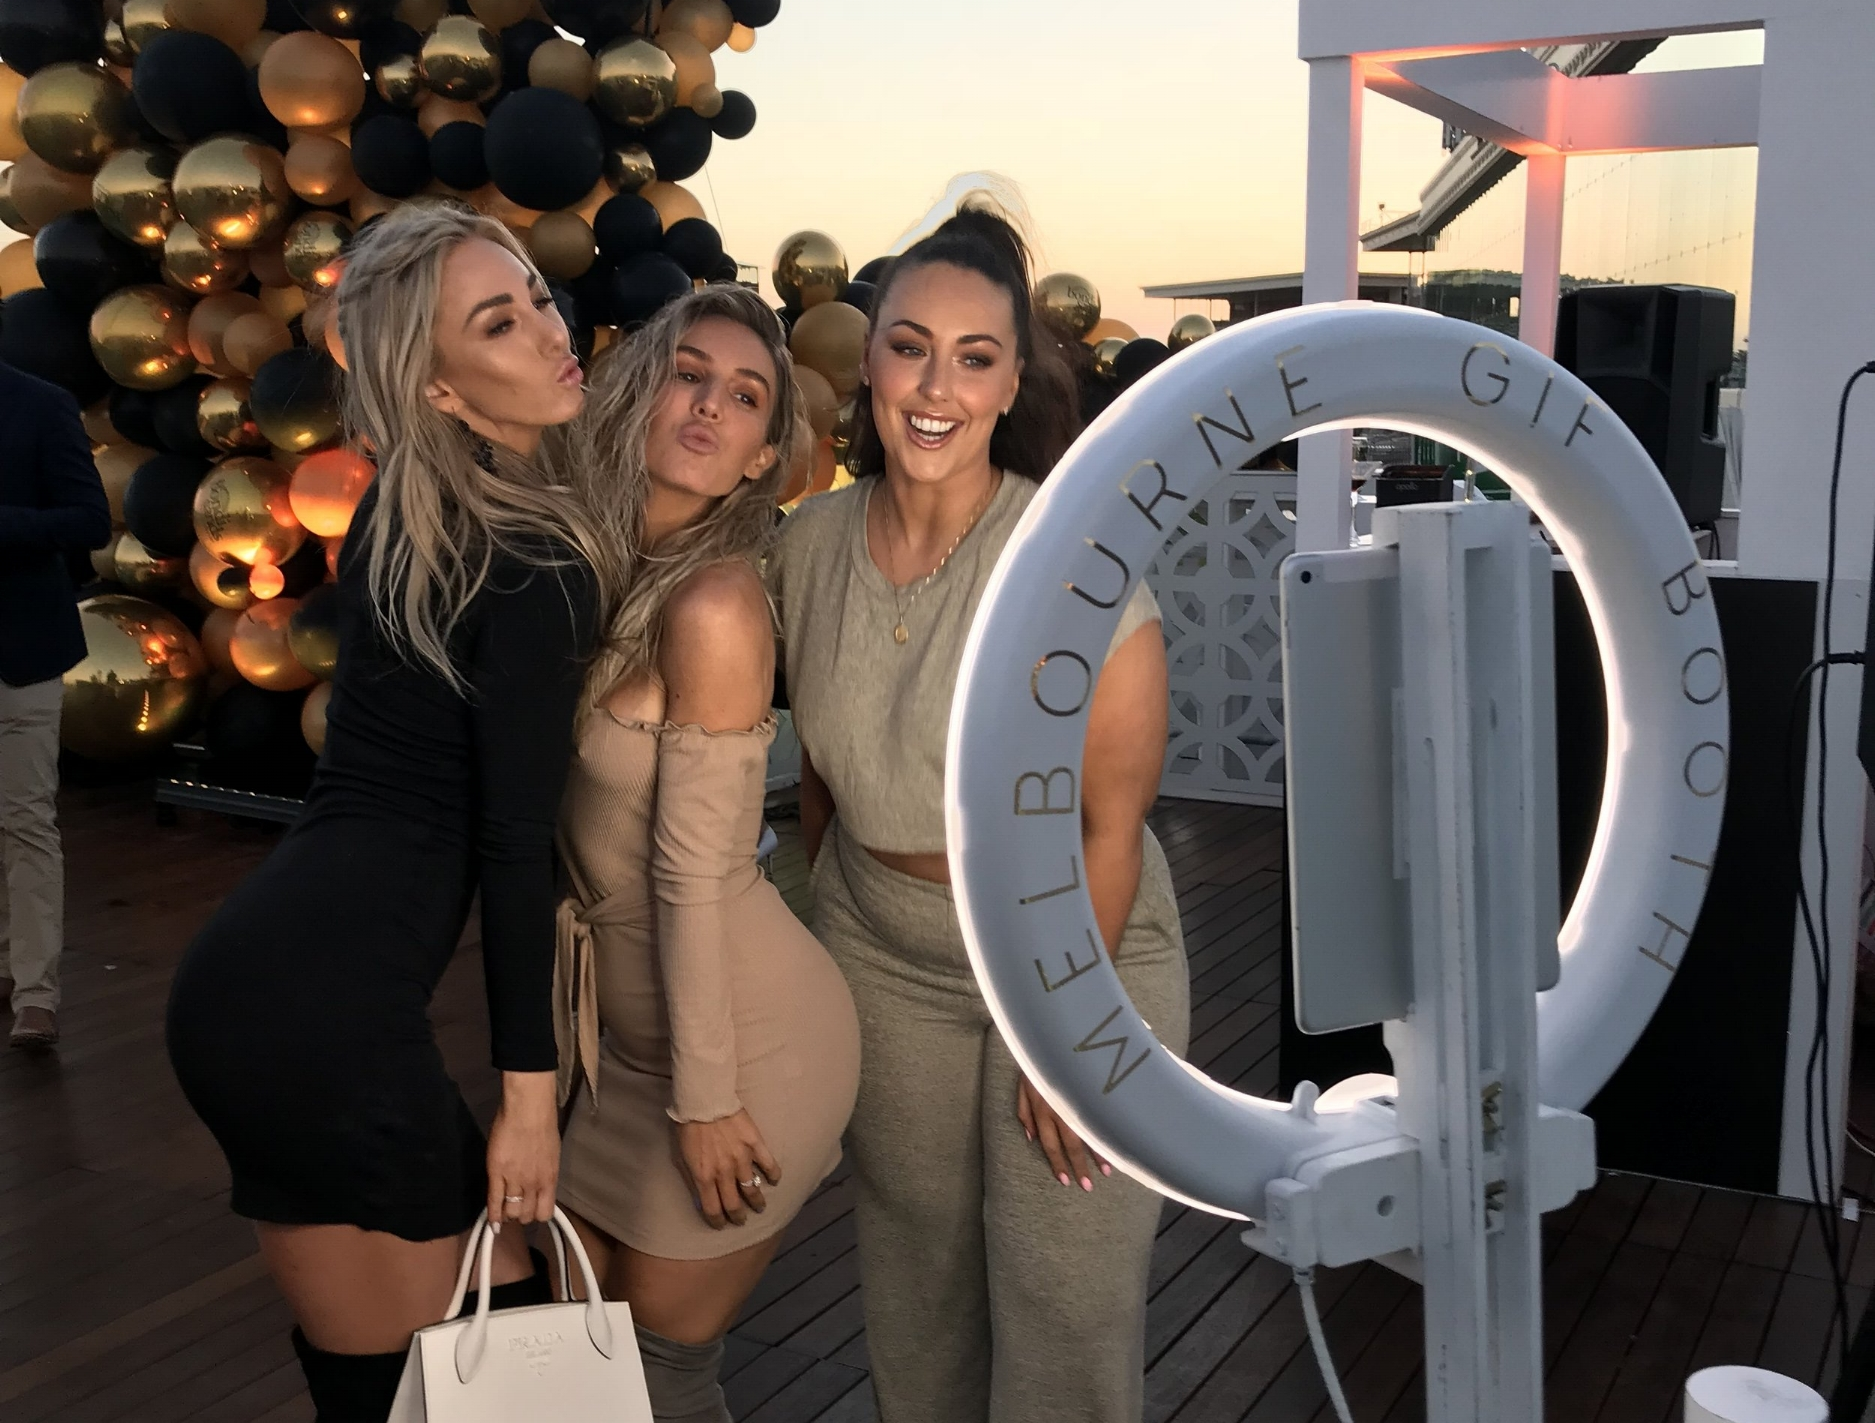 Bondi Sands     Venue: Caulfield Racecourse, Melbourne    MGB Highlights: Ashy Bines & co loving the booth…